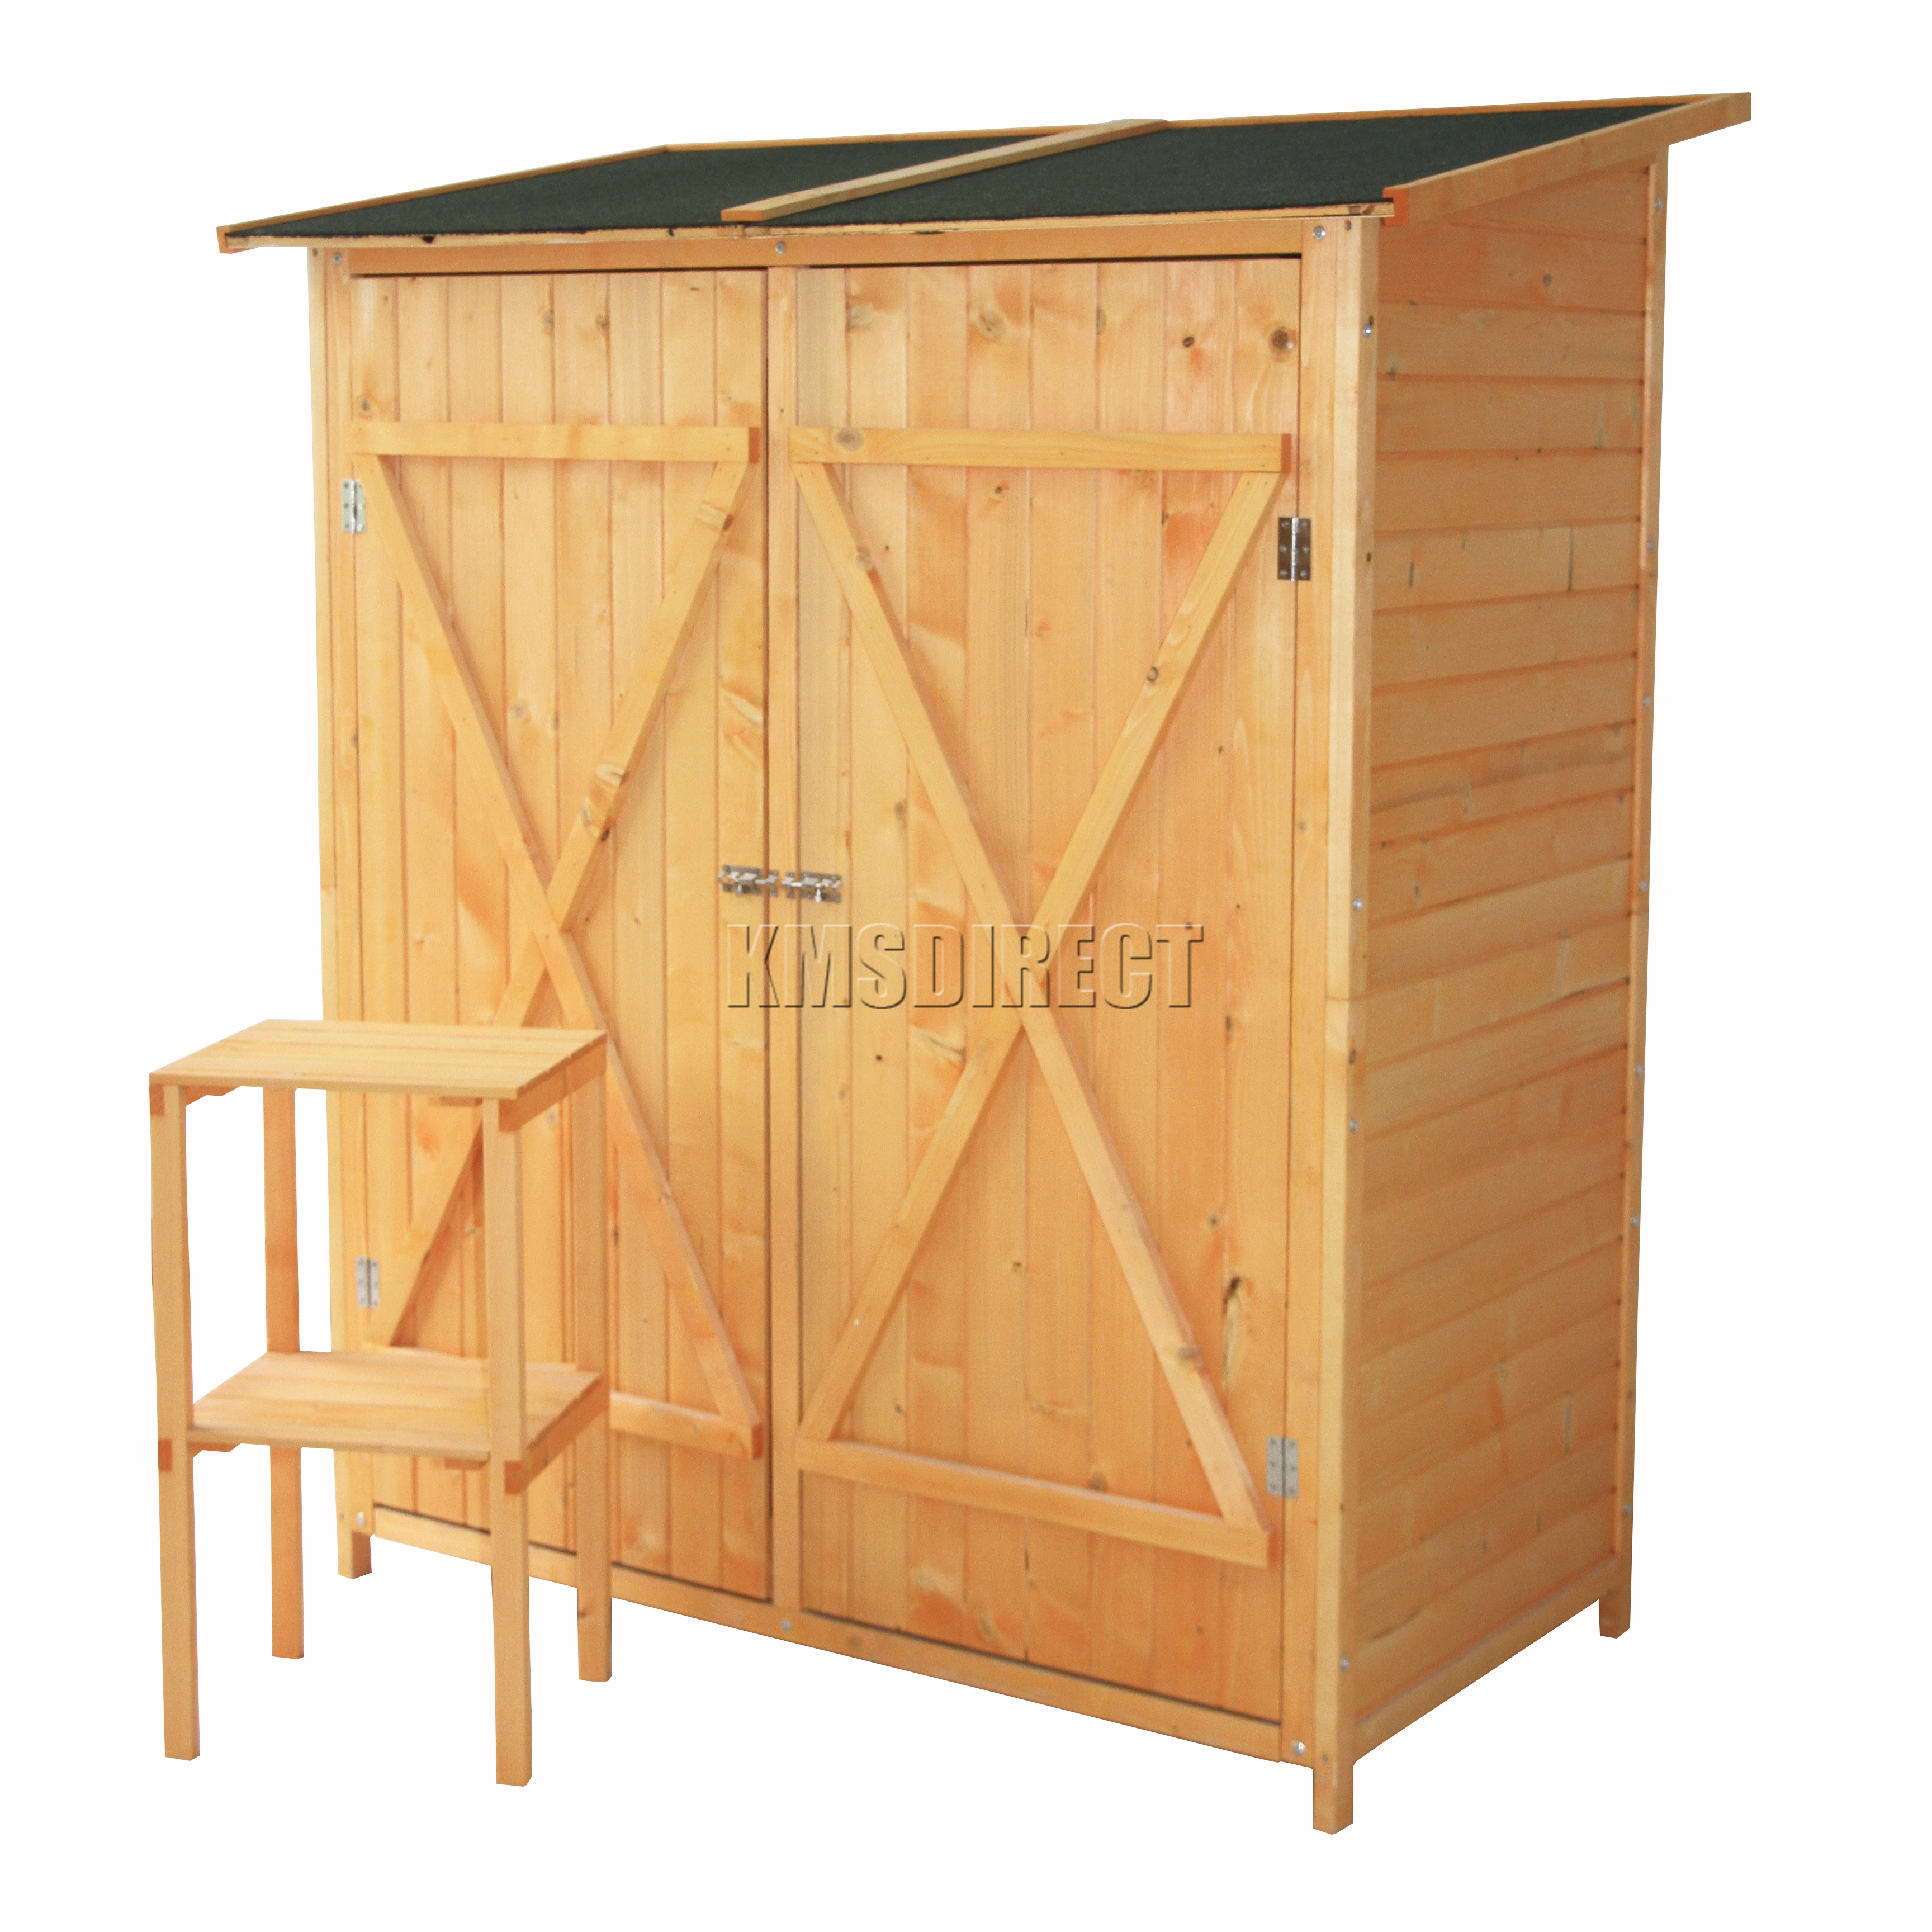 foxhunter garden tool shed wood tool storage chest pent